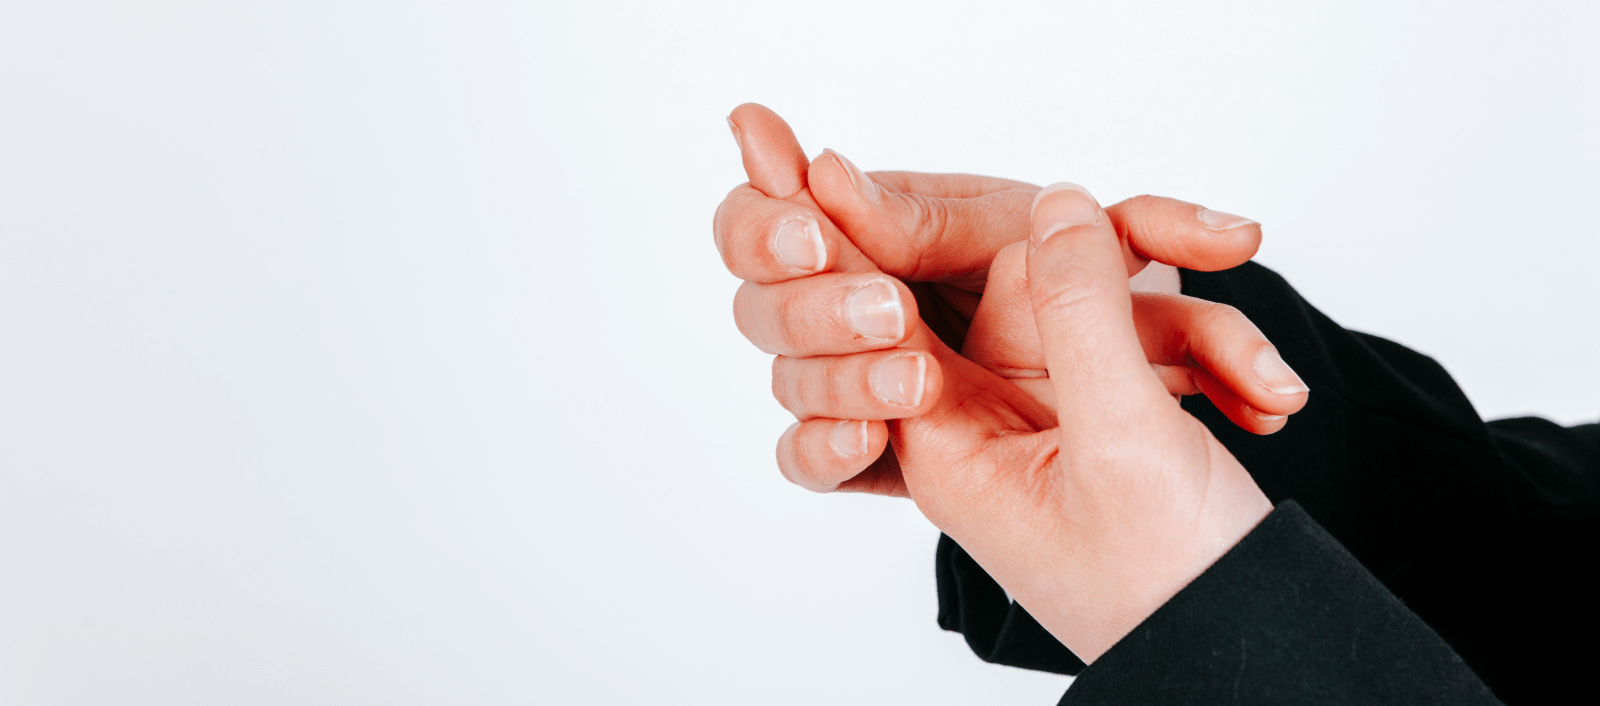 How Anxiety Causes Sensations in the Fingers